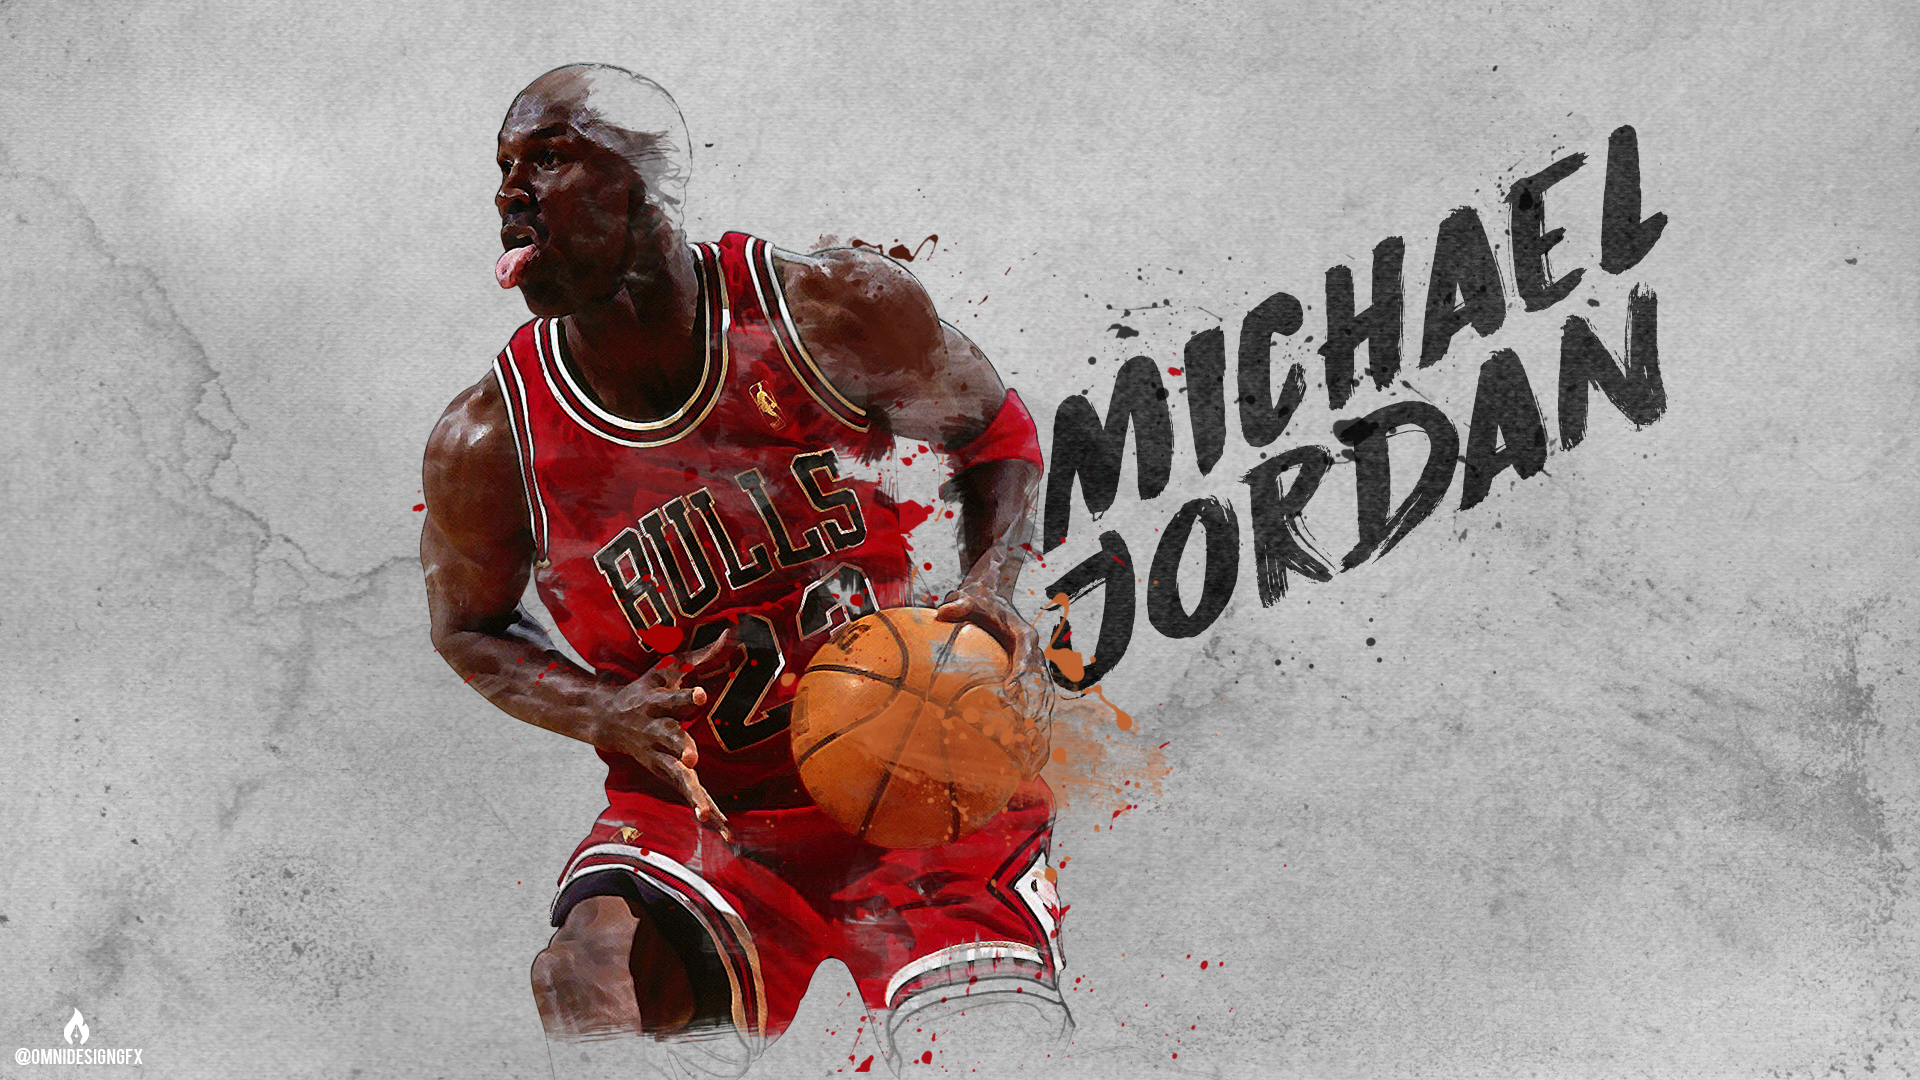 1920x1080 - Michael Jordan Wallpapers 11